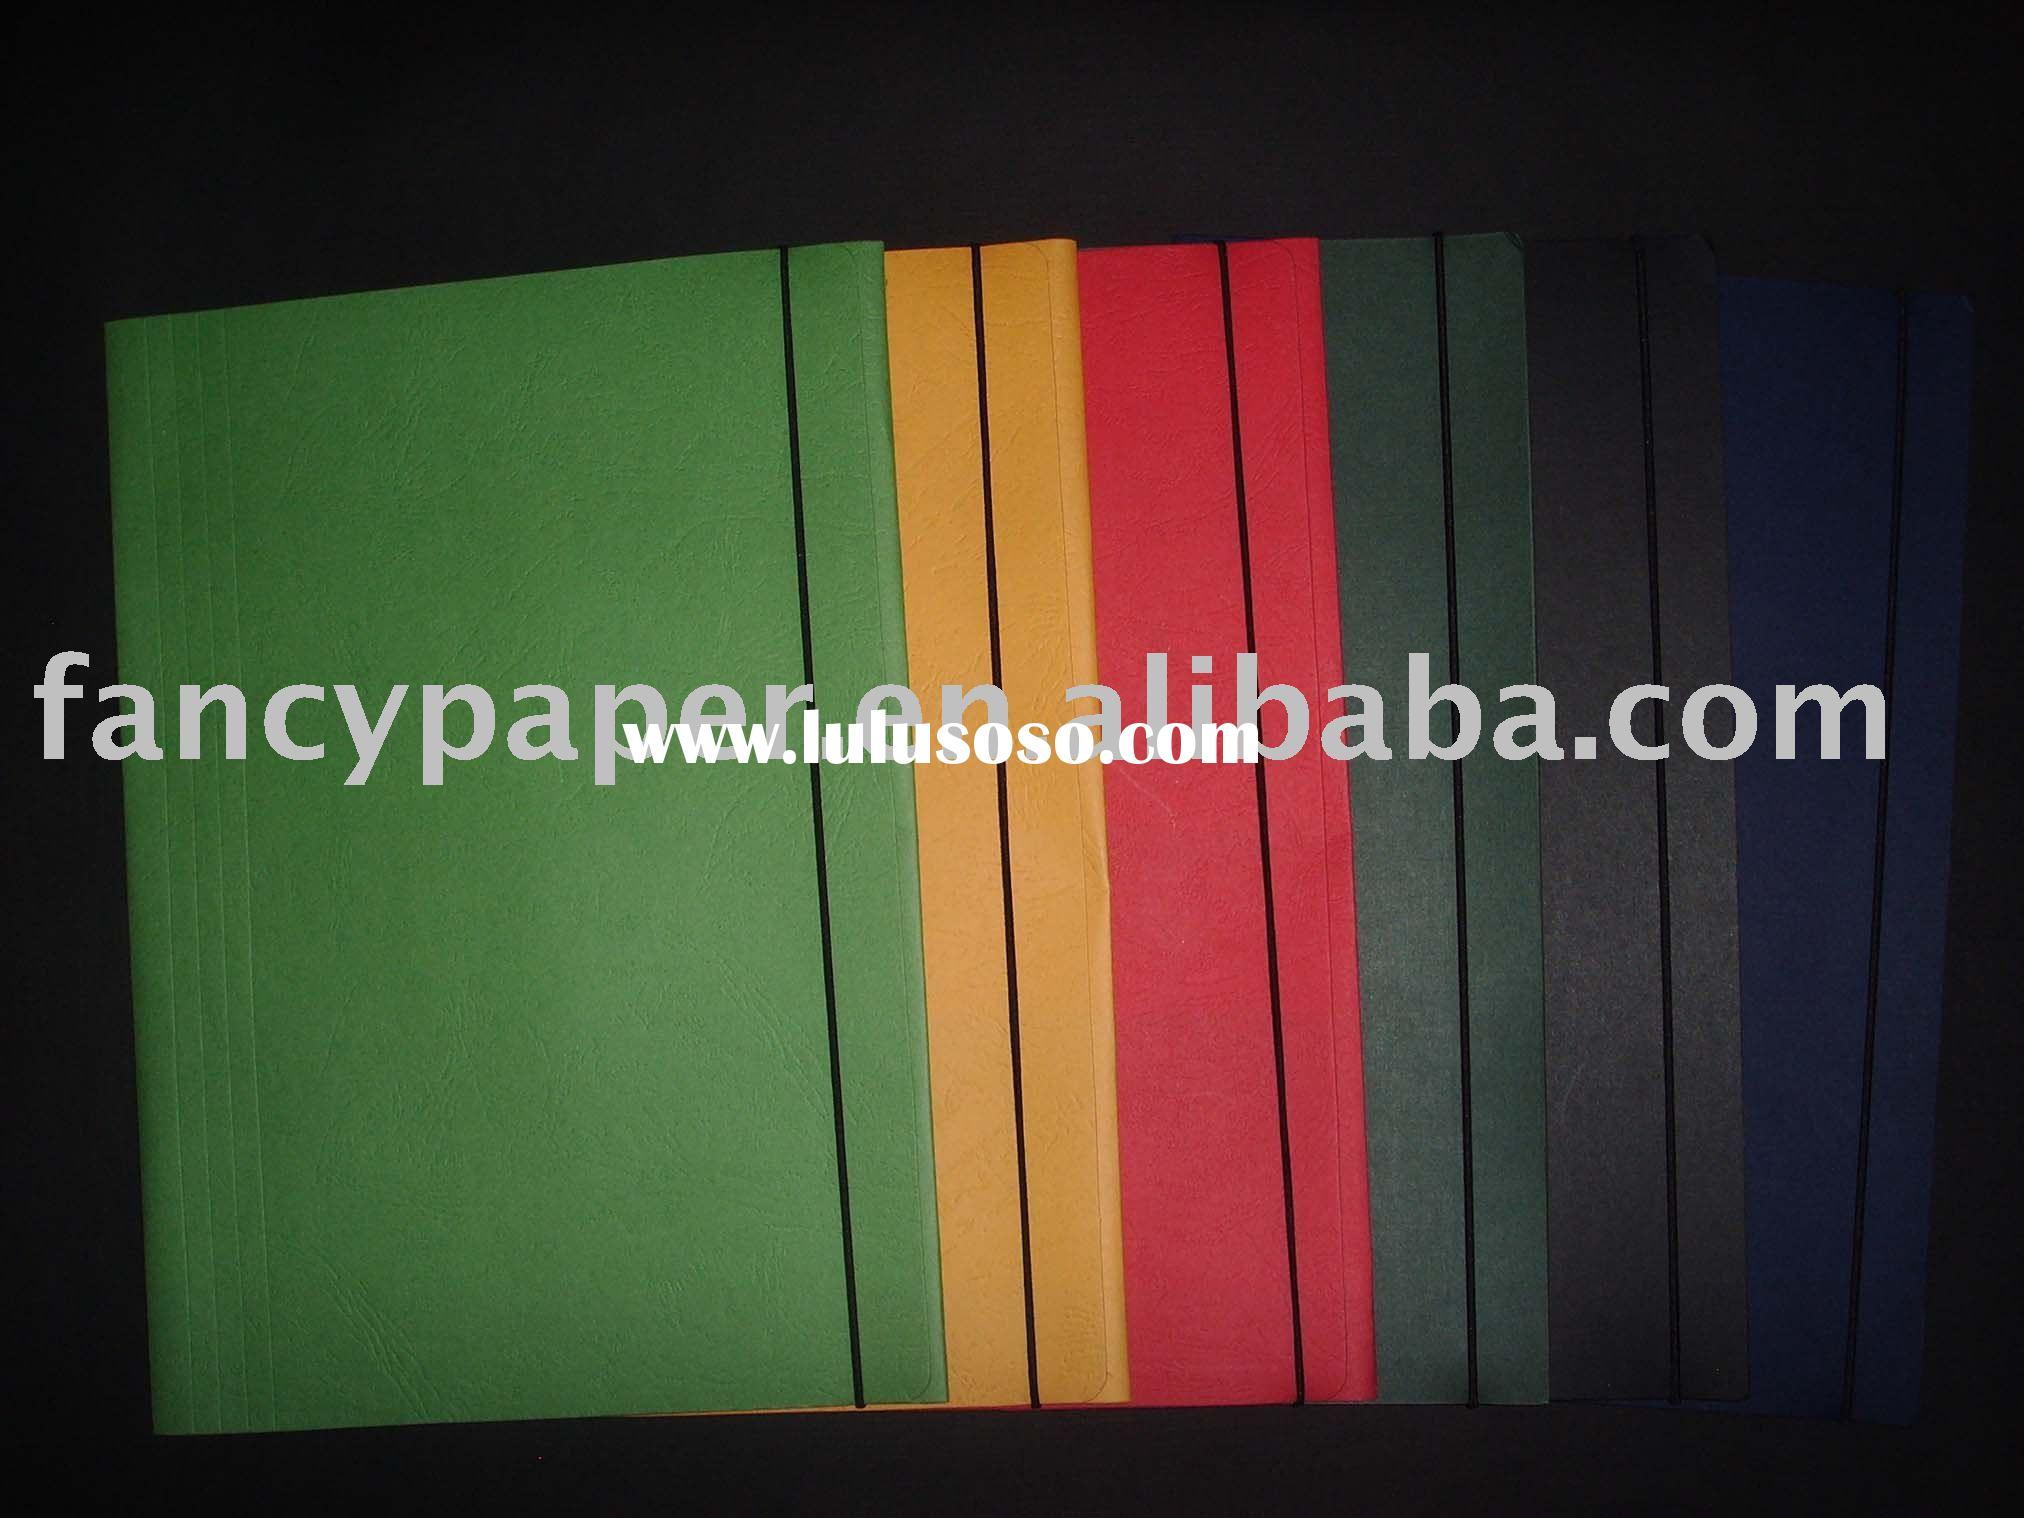 Pocket Portfolio (Pocket Folder,Paper Folder,File Holder, Document Holder, Clip File, Suspension Fil